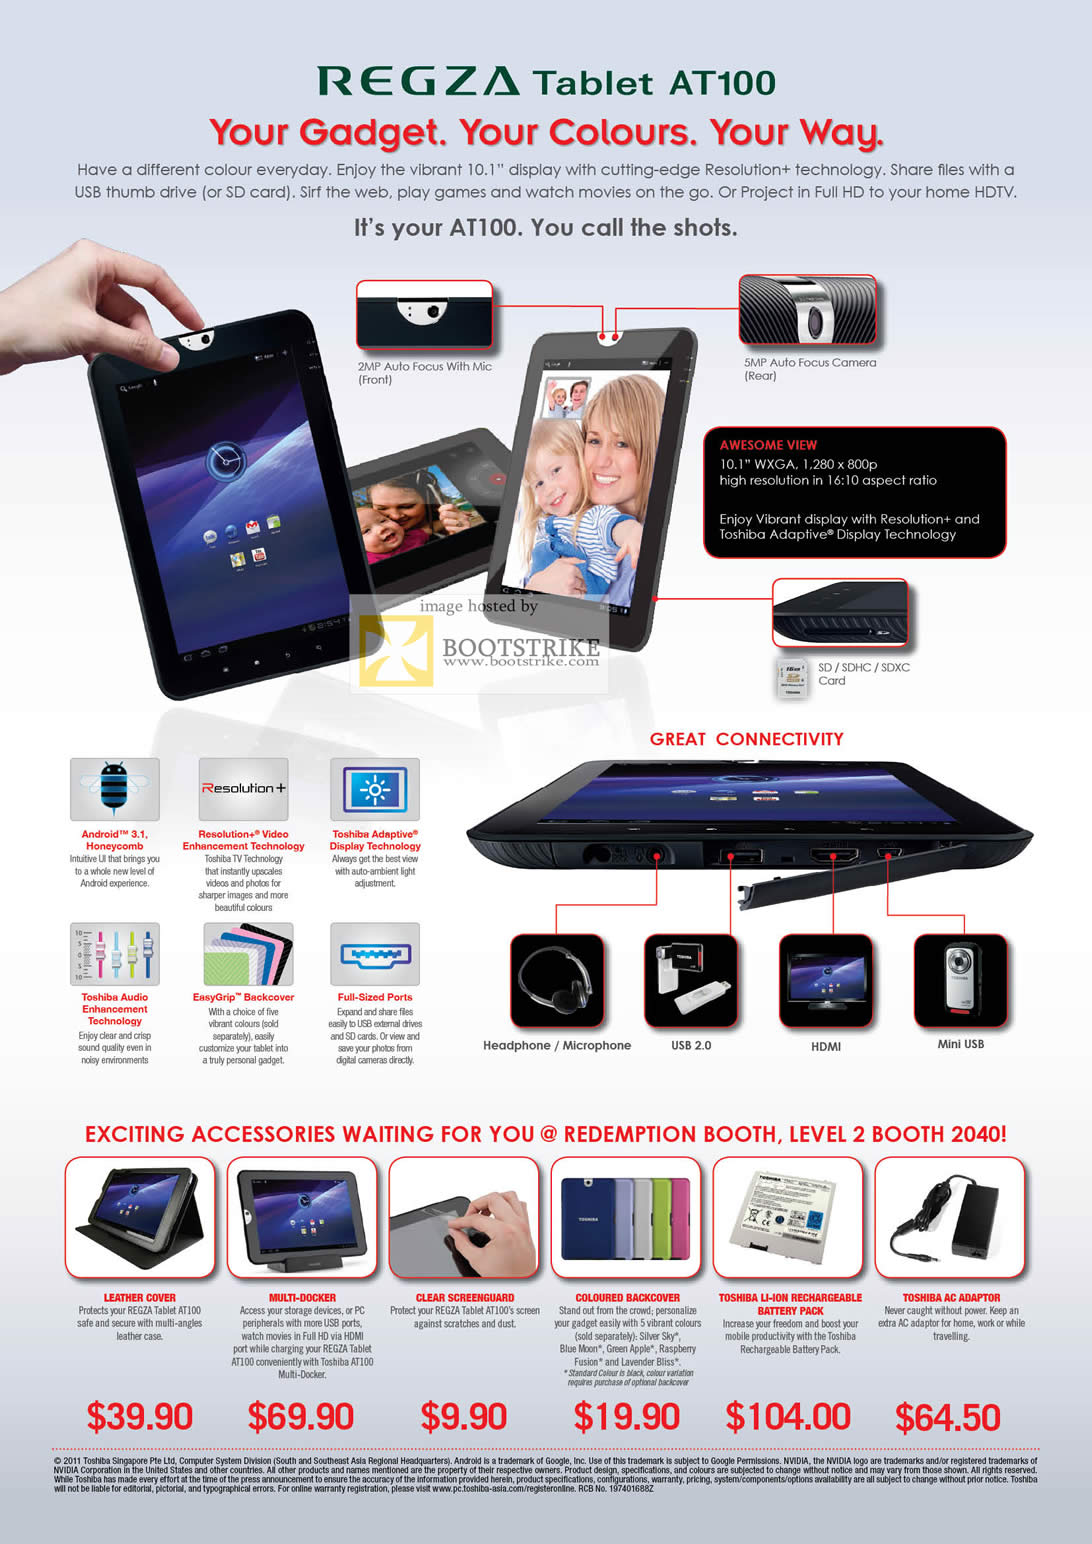 toshiba tablet regza at100 1003 specifications features comex 2011 rh itfairsg com toshiba thrive manual user guide Toshiba AT300